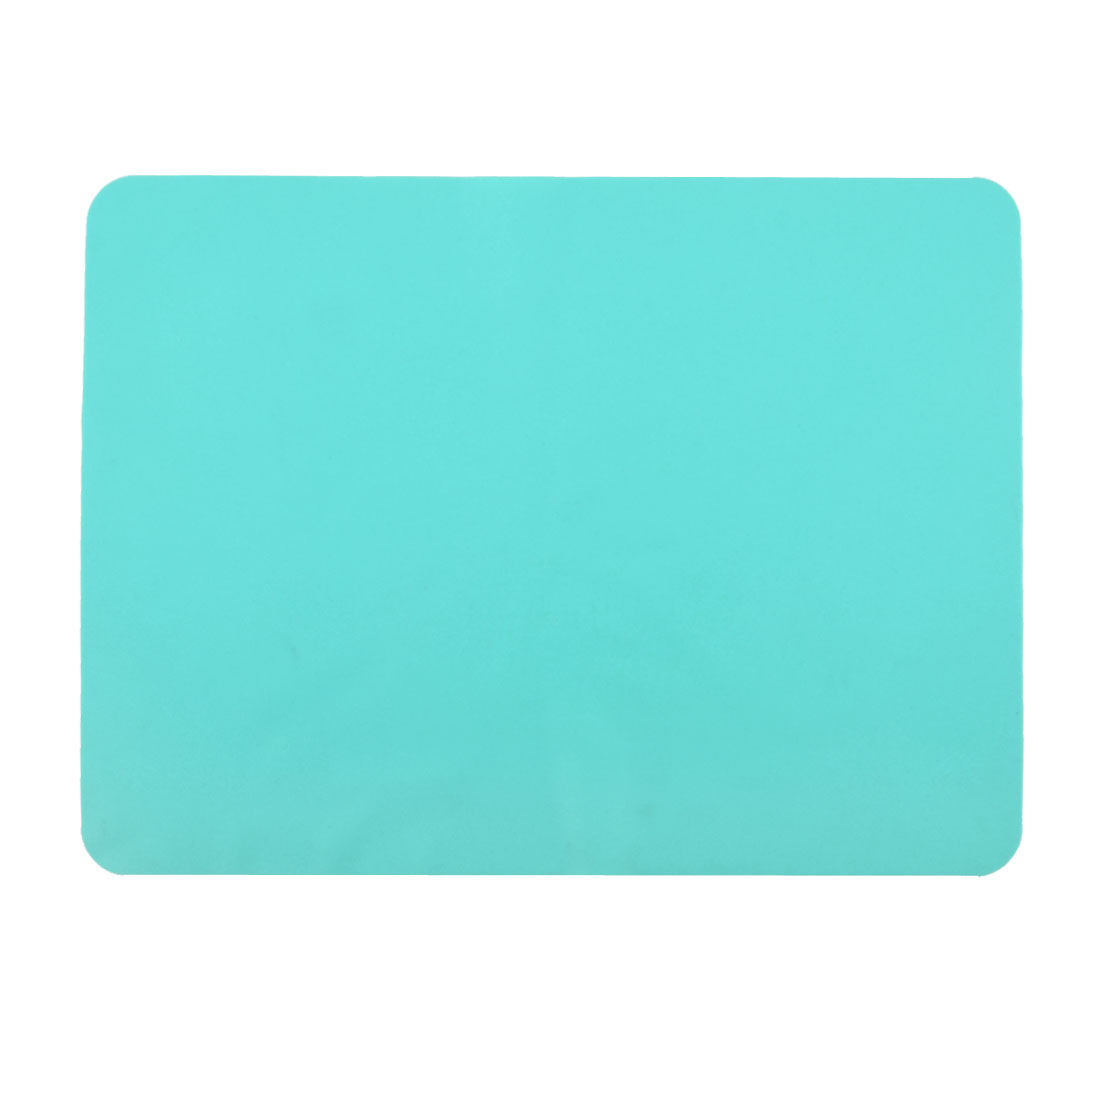 Home Restaurant Silicone Table Heat Resistant Baking Mat Cushion Placemat Cyan